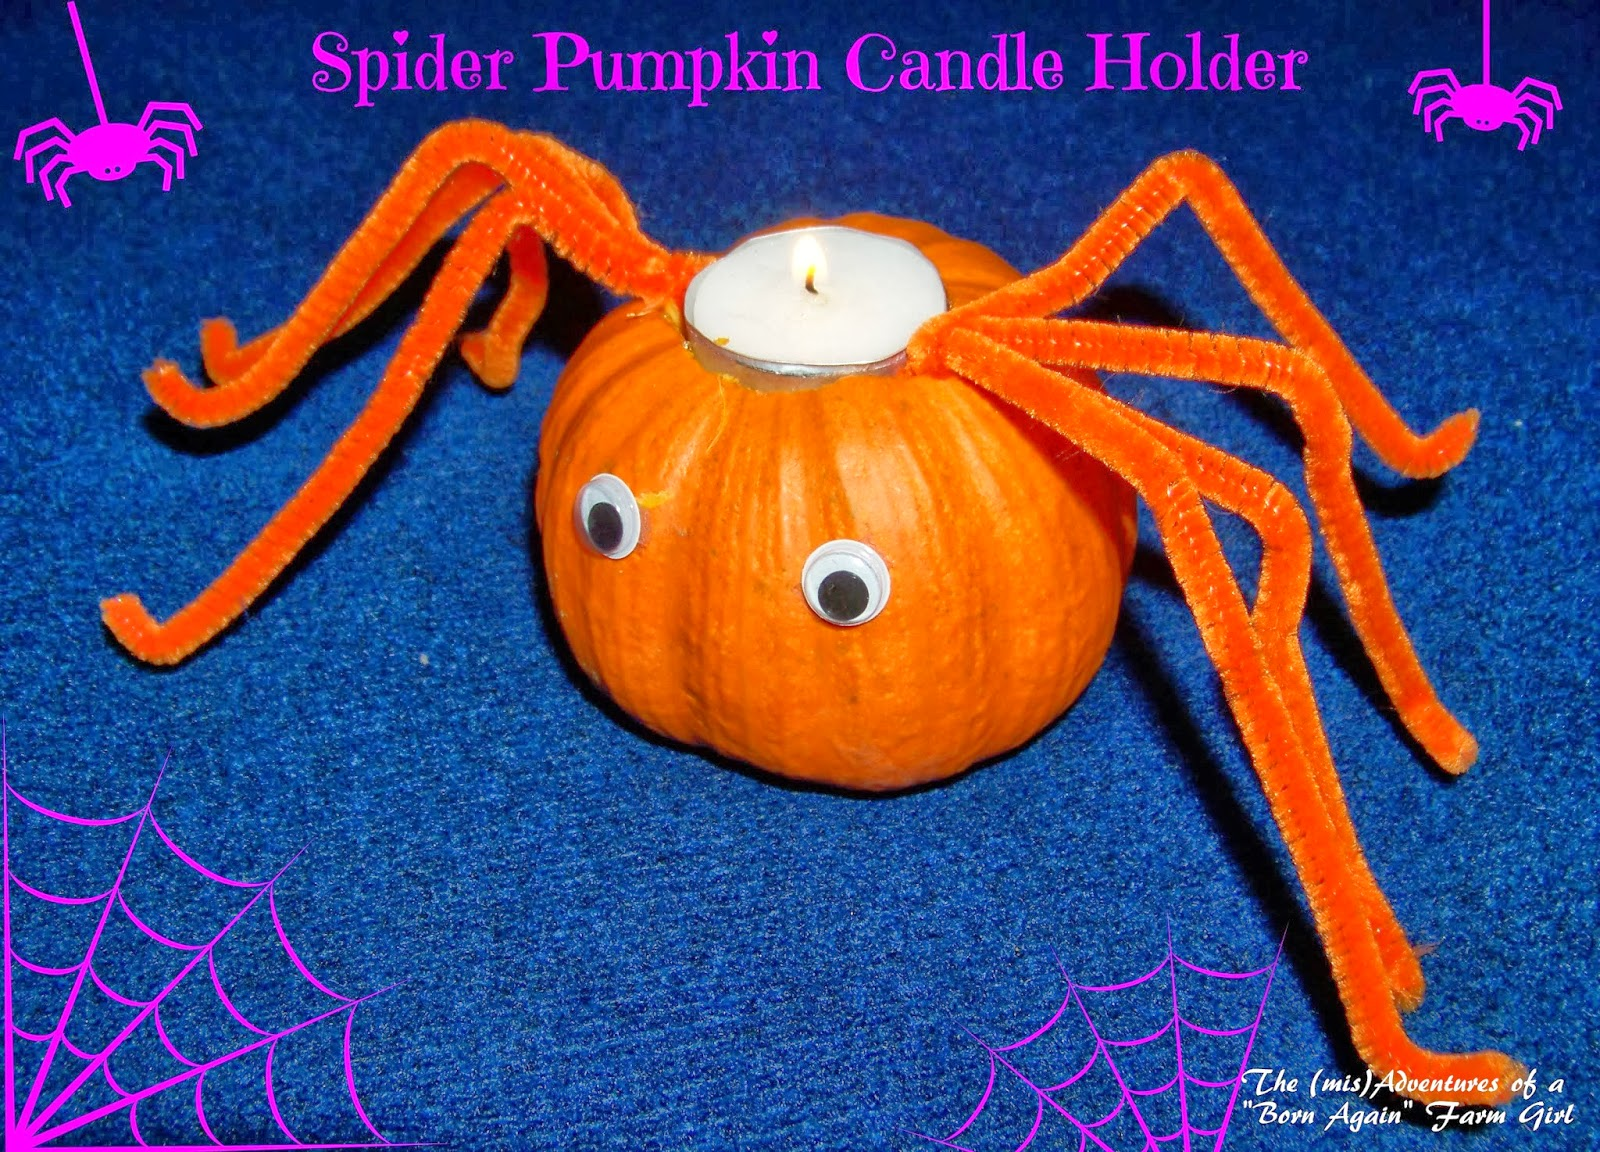 Spider Pumpkin Candle Holder